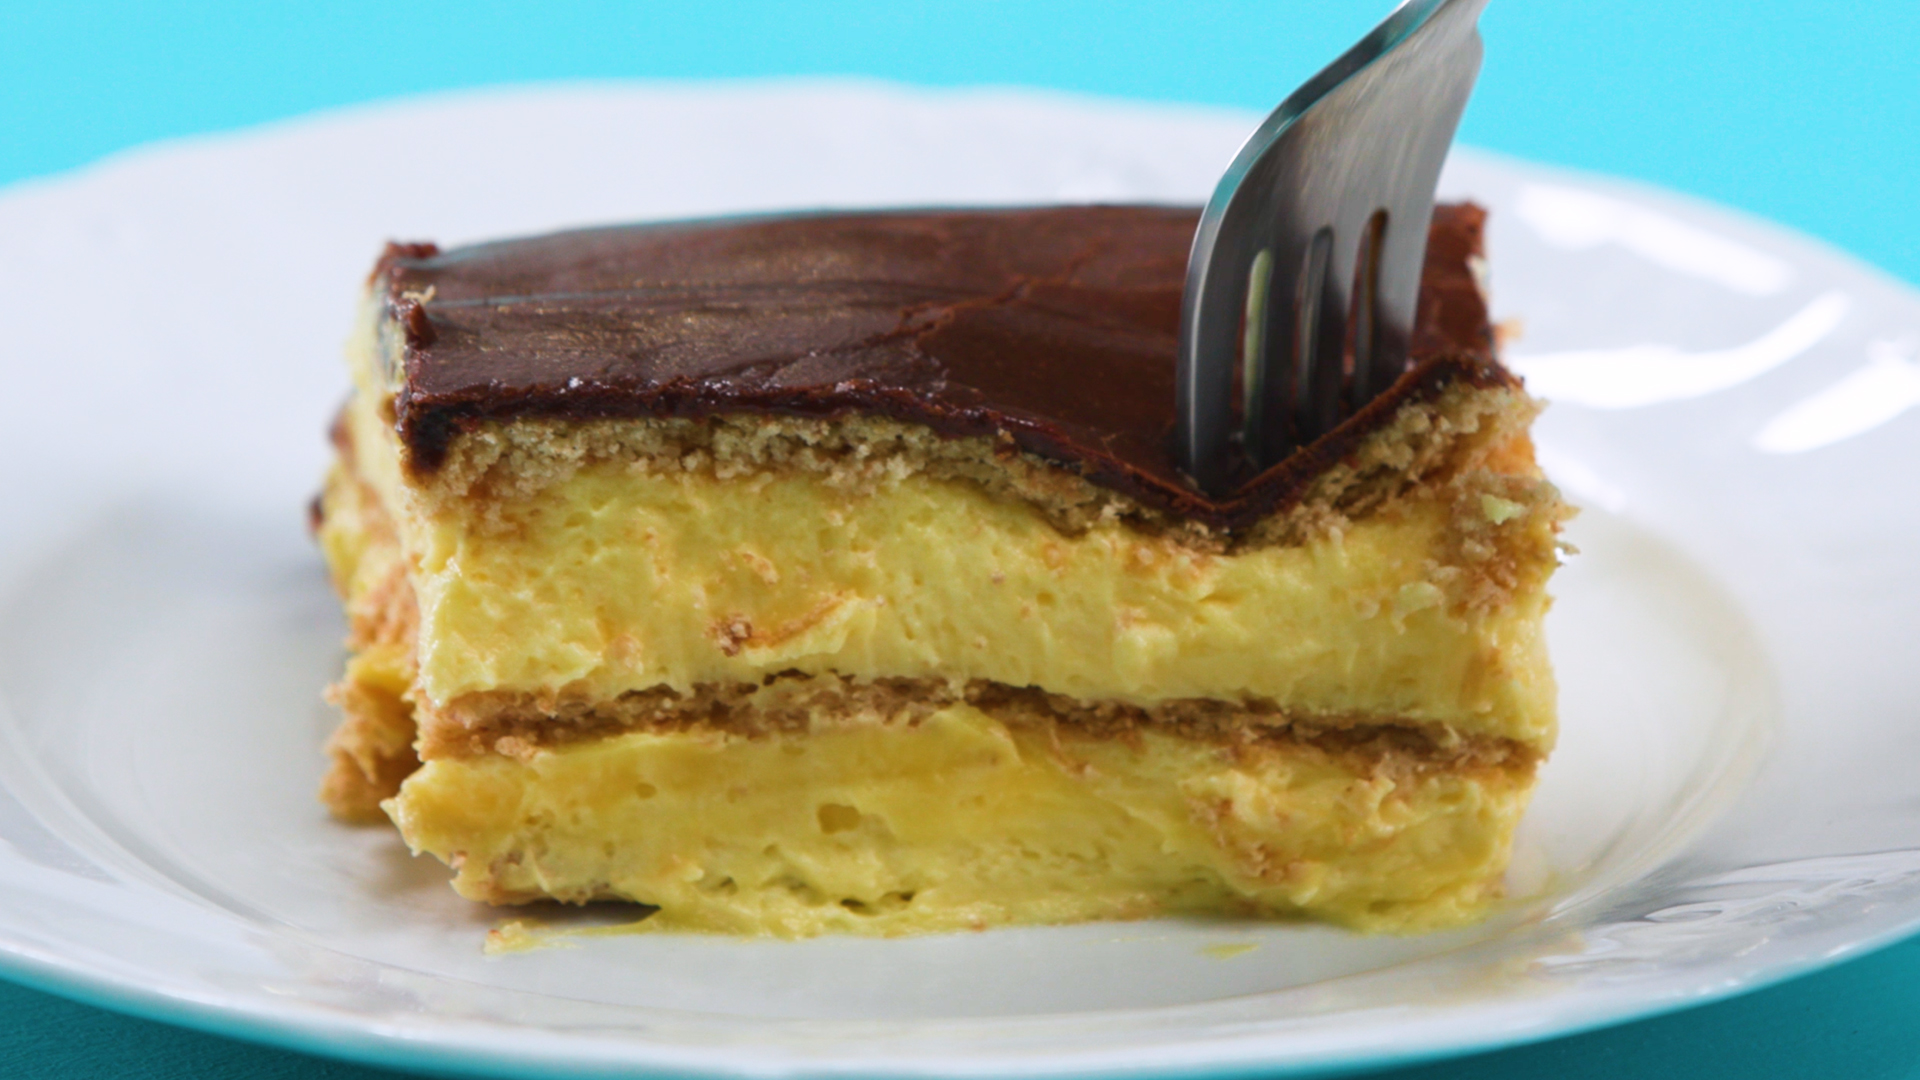 No Bake Chocolate Eclair Cake 16x9.jpg